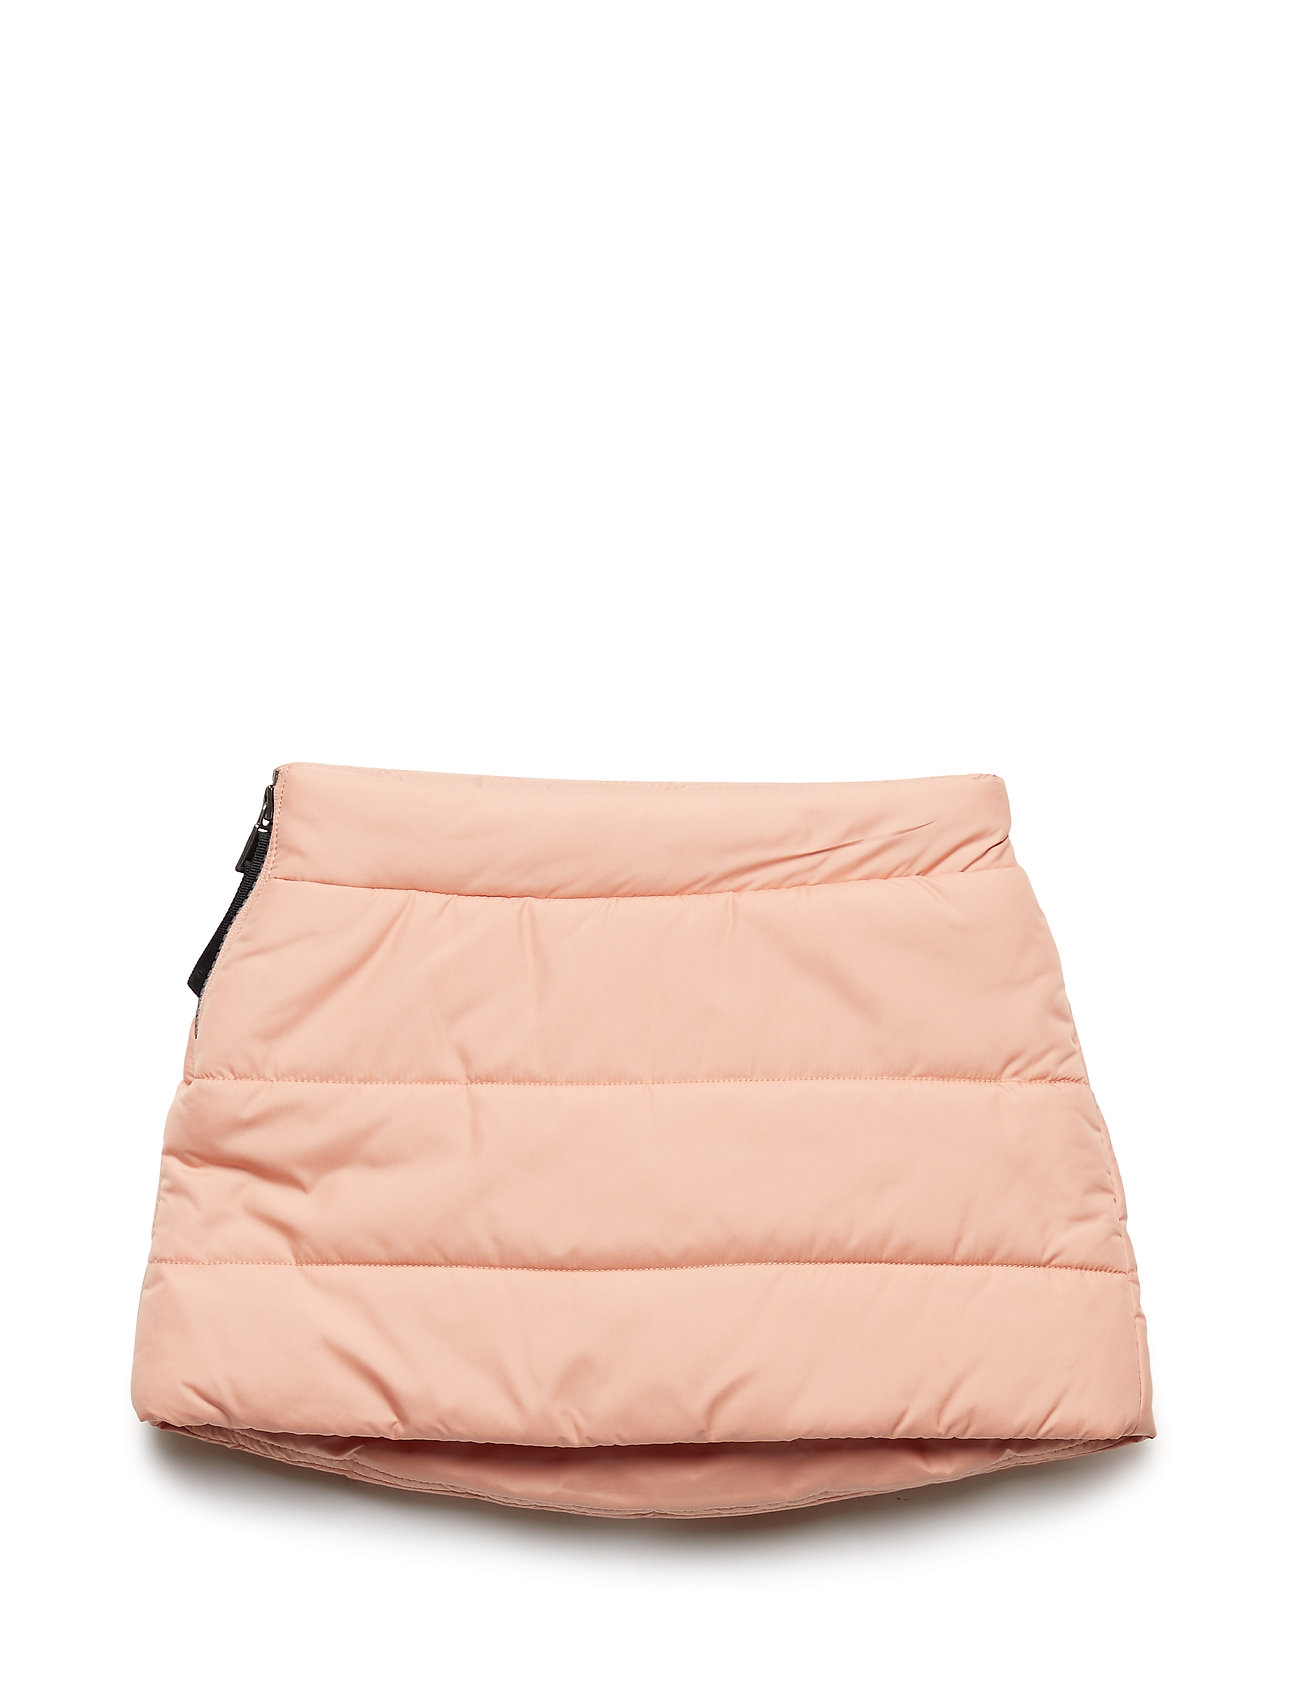 Didriksons TABEI KIDS SKIRT - DUSTY CORAL